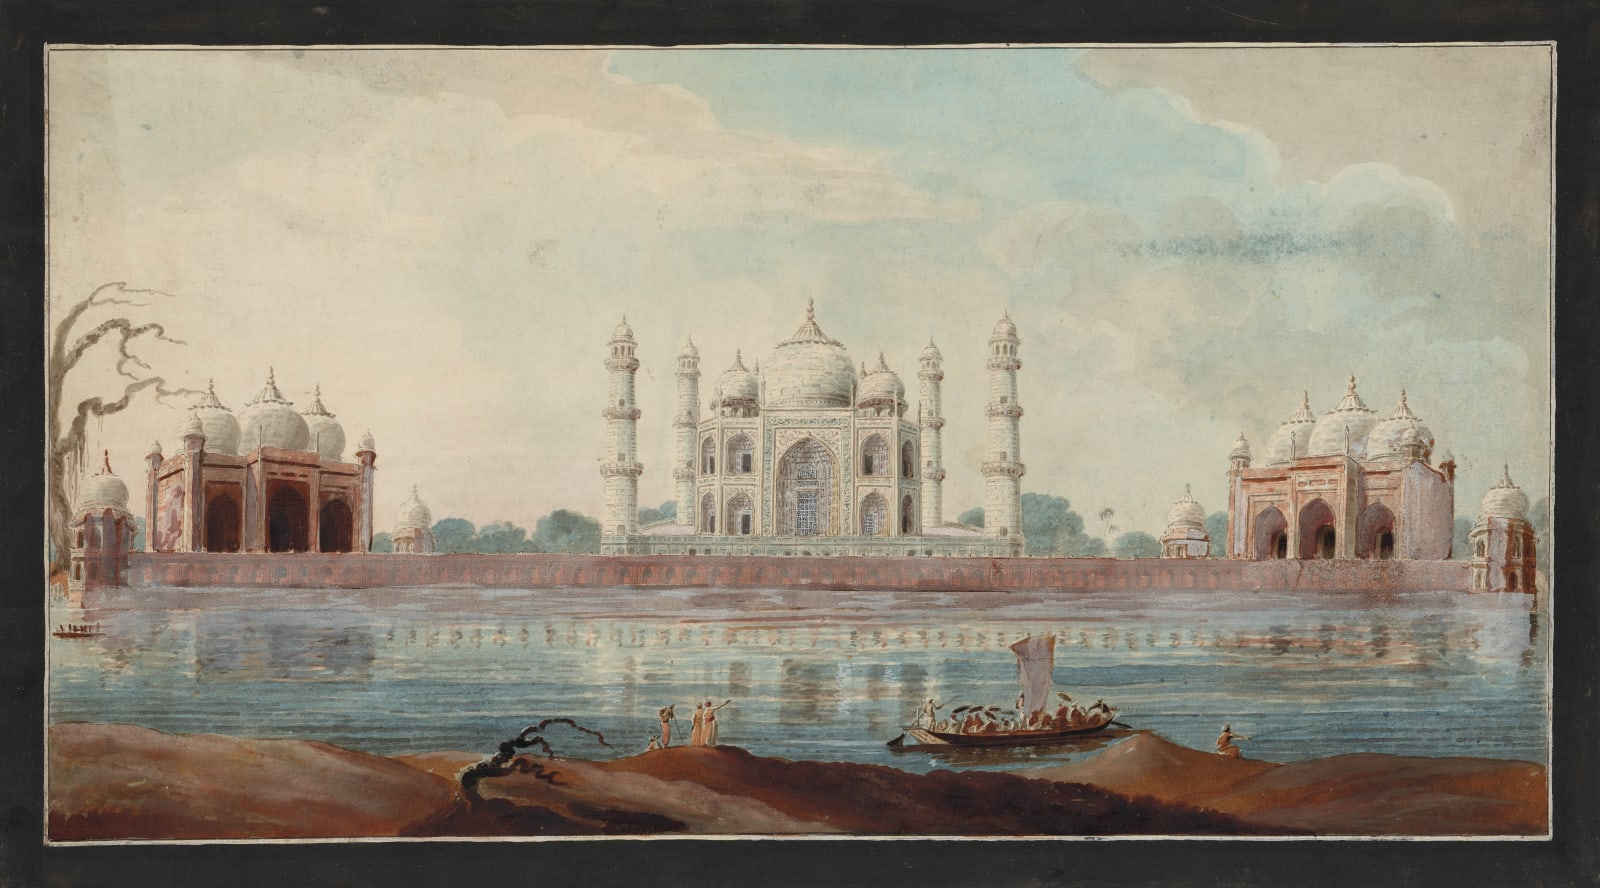 The Taj Mahal seen from across the river with mosque and assembly hall in perspective view with a ferryboat putting out, in the manner of Sita Ram. Murshidabad, 1795-1807